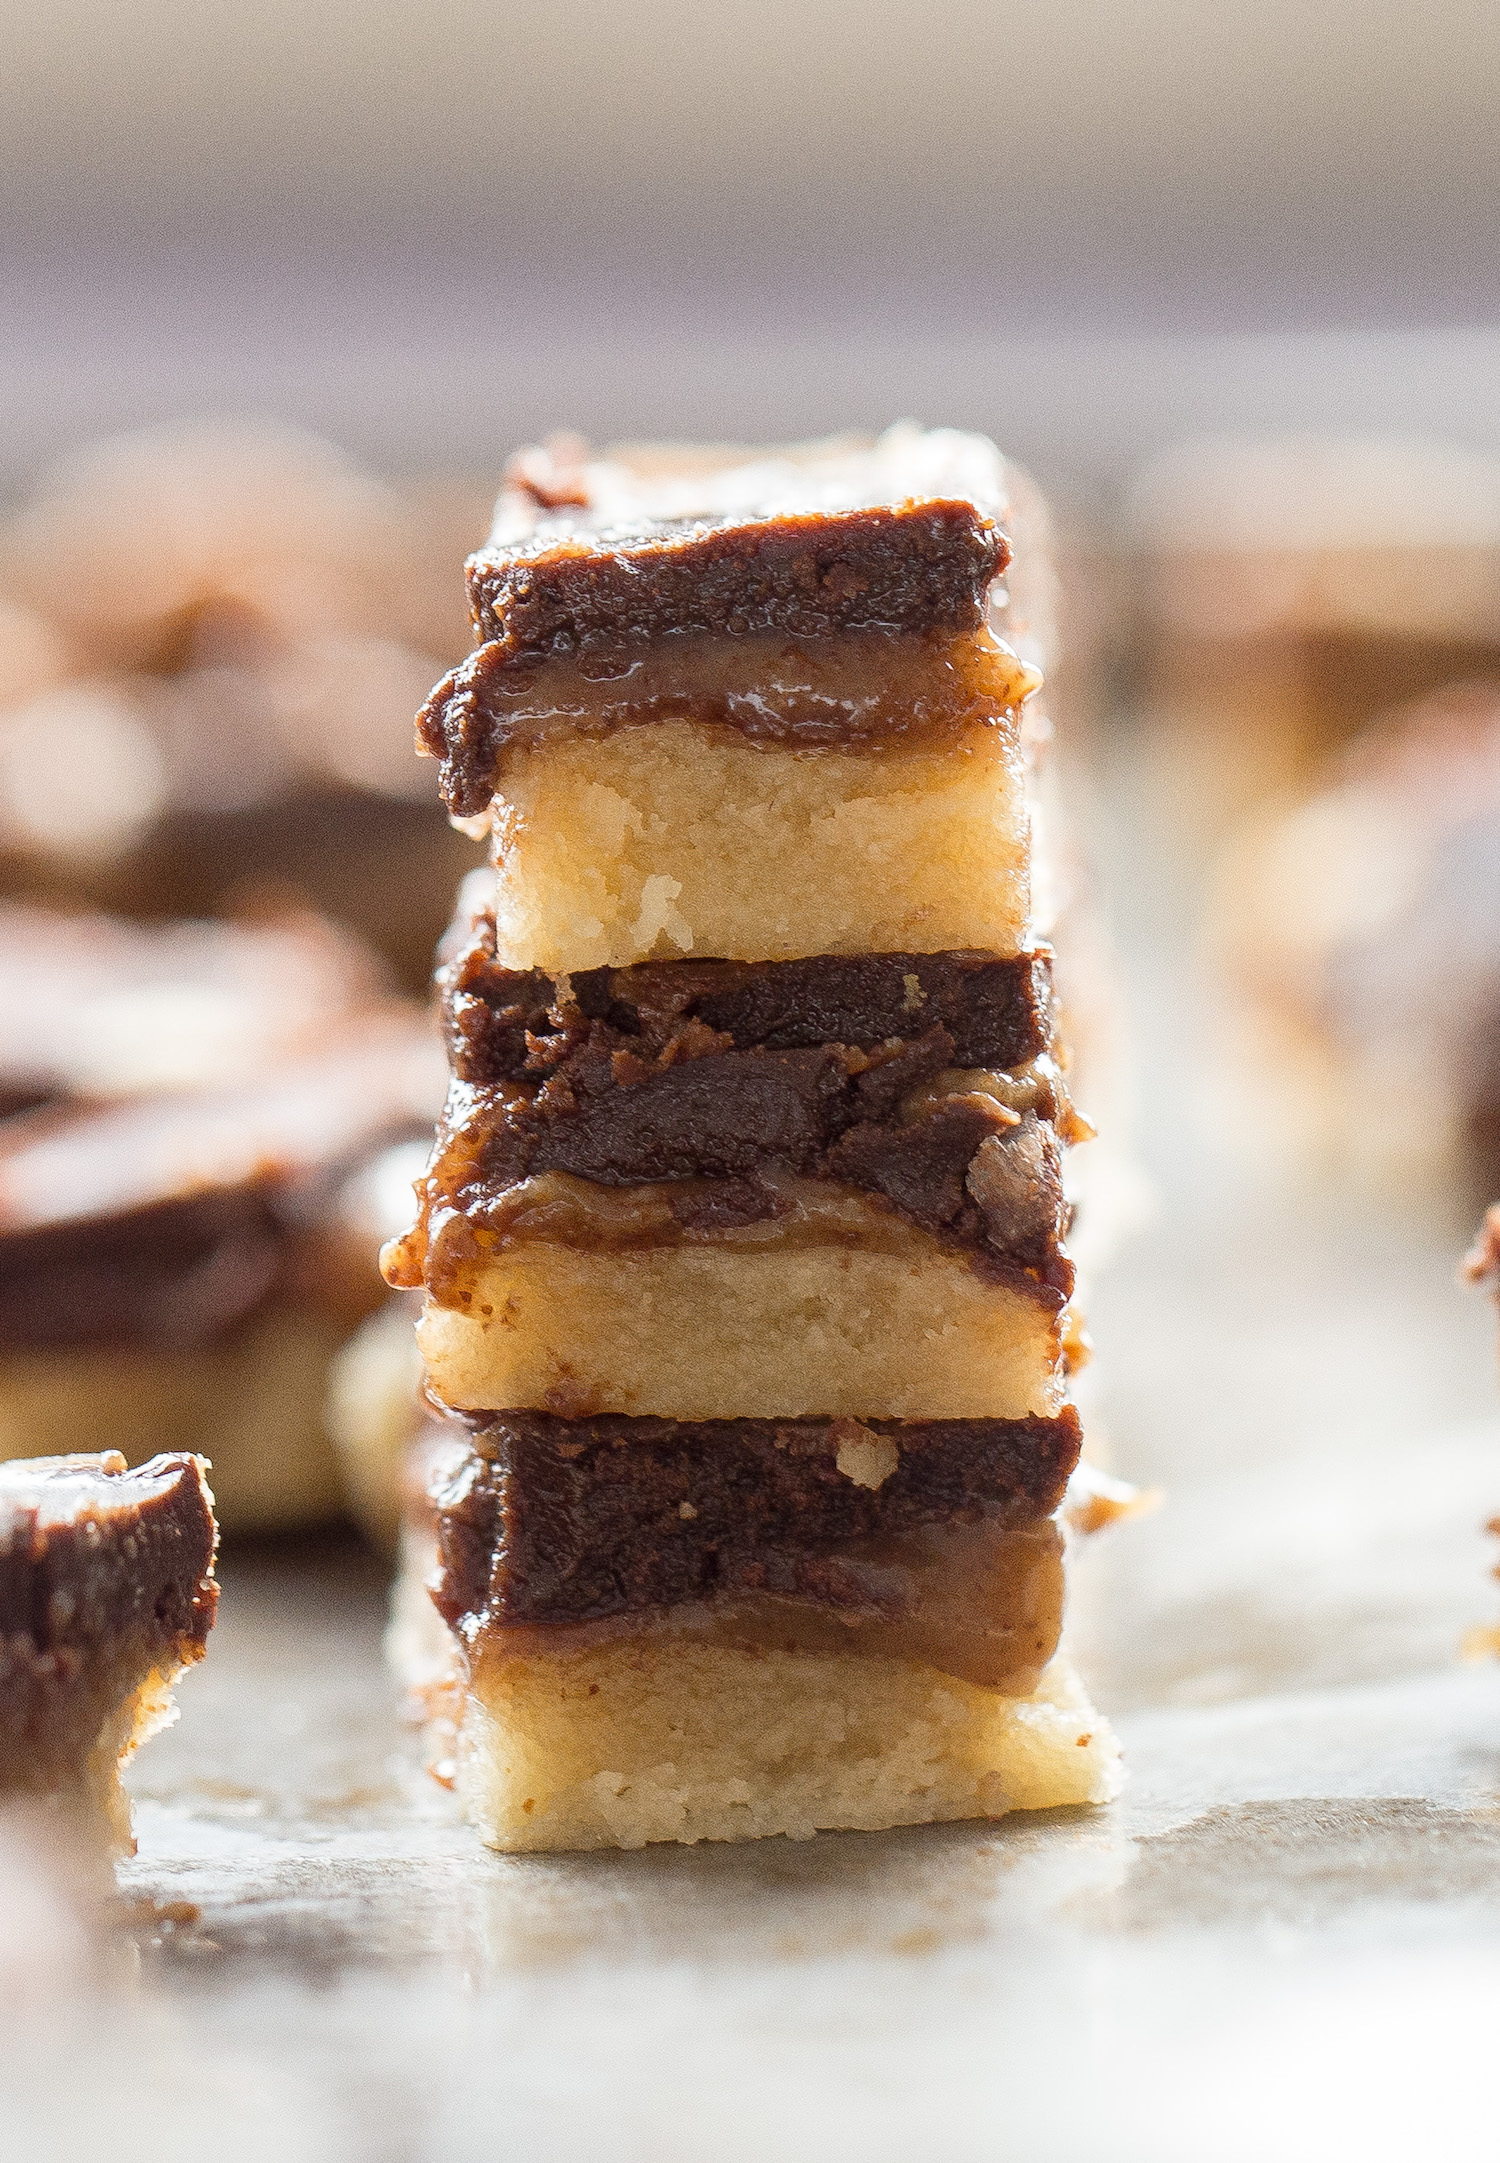 Wholesome Caramel Chocolate Shortbread Bars: chewy shortbread crust, rich caramel filling, and creamy chocolate. Grain free, sugar free, vegan! Video included. | TrufflesandTrends.com